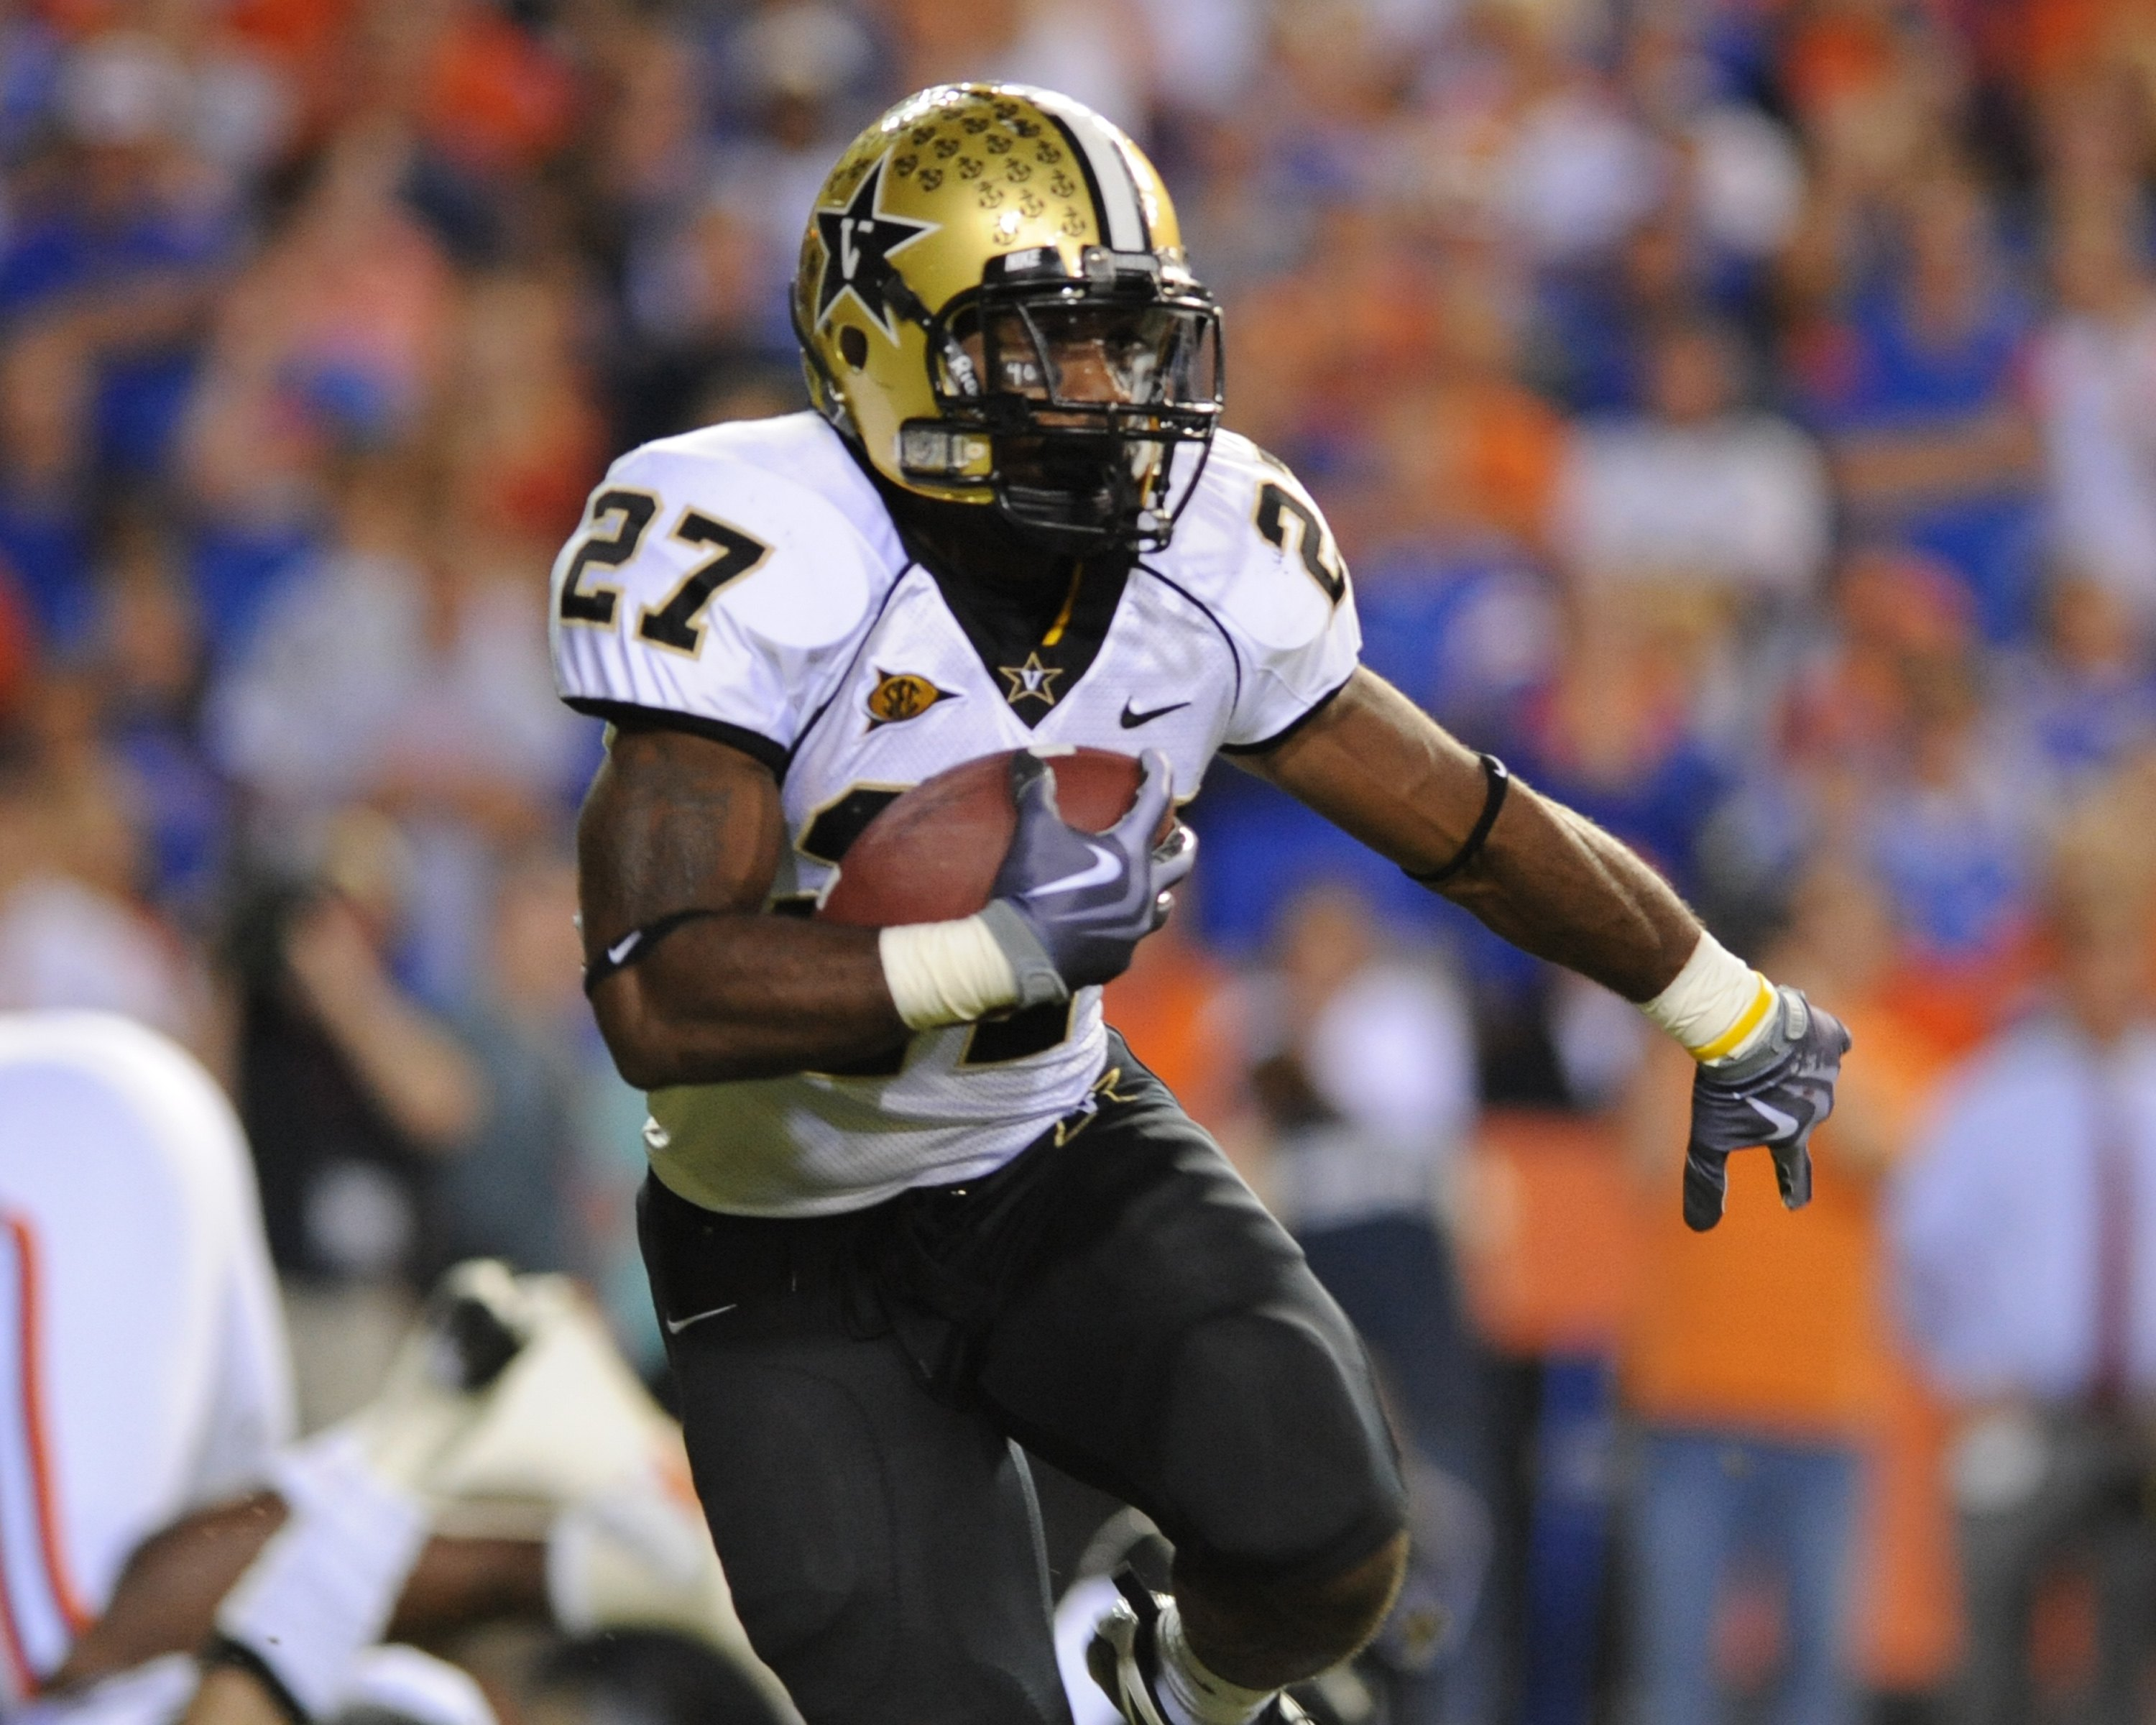 GAINESVILLE, FL - NOVEMBER 7: Running back Warren Norman #27 of the Vanderbilt Commodores rushes upfield against the Florida Gators on November 7, 2009 at Ben Hill Griffin Stadium in Gainesville, Florida.  (Photo by Al Messerschmidt/Getty Images)